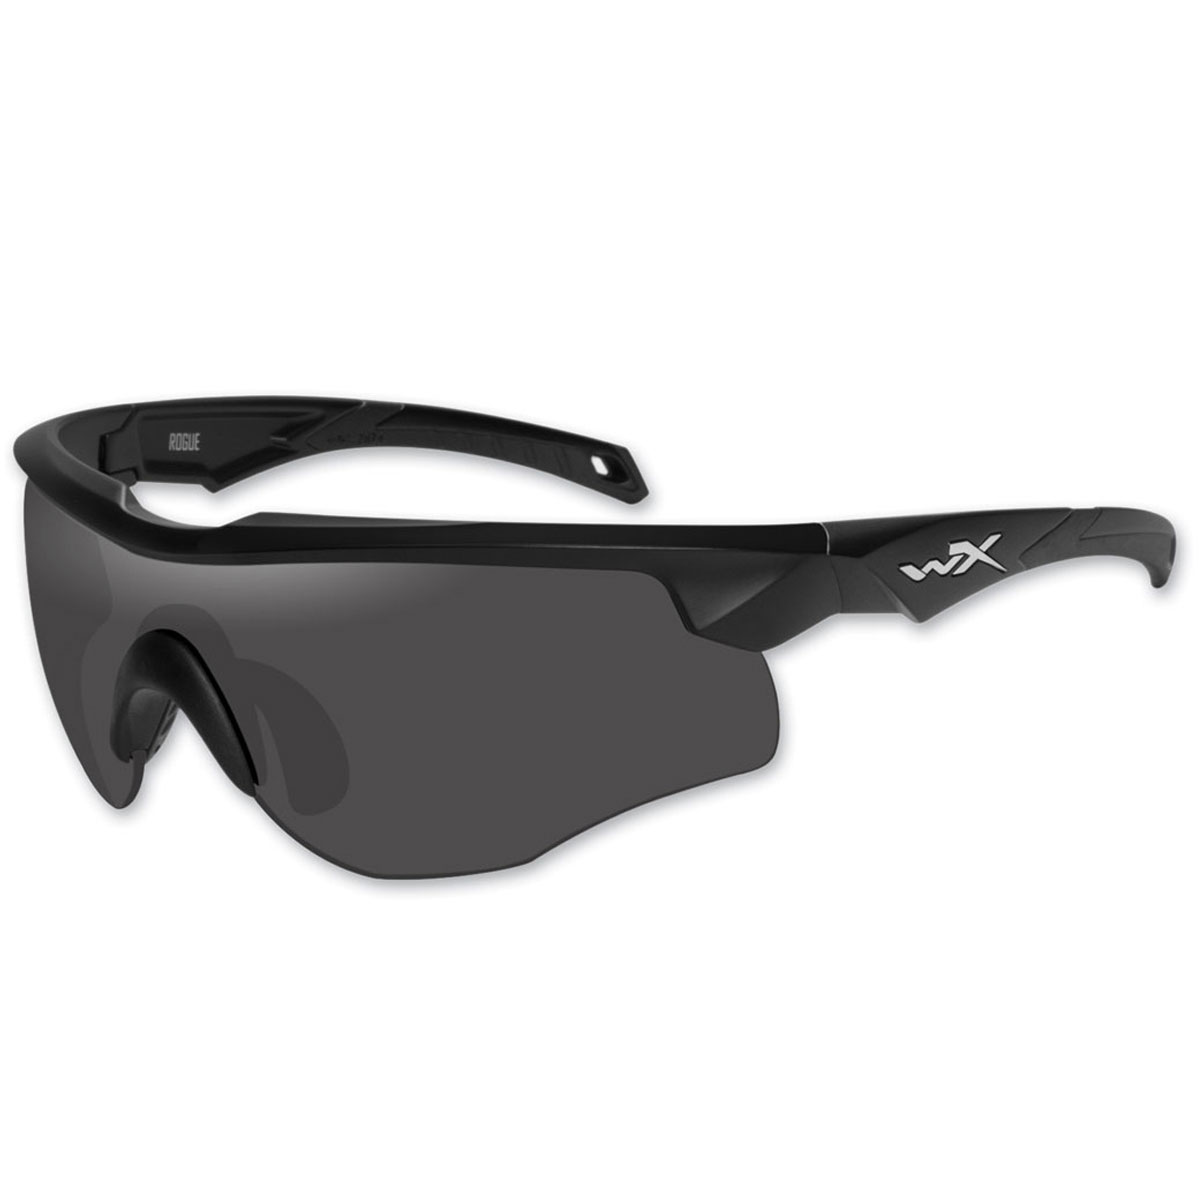 Wiley X Rogue Matte Black Frame Sunglasses with Clear, Smoke and Rust Lens